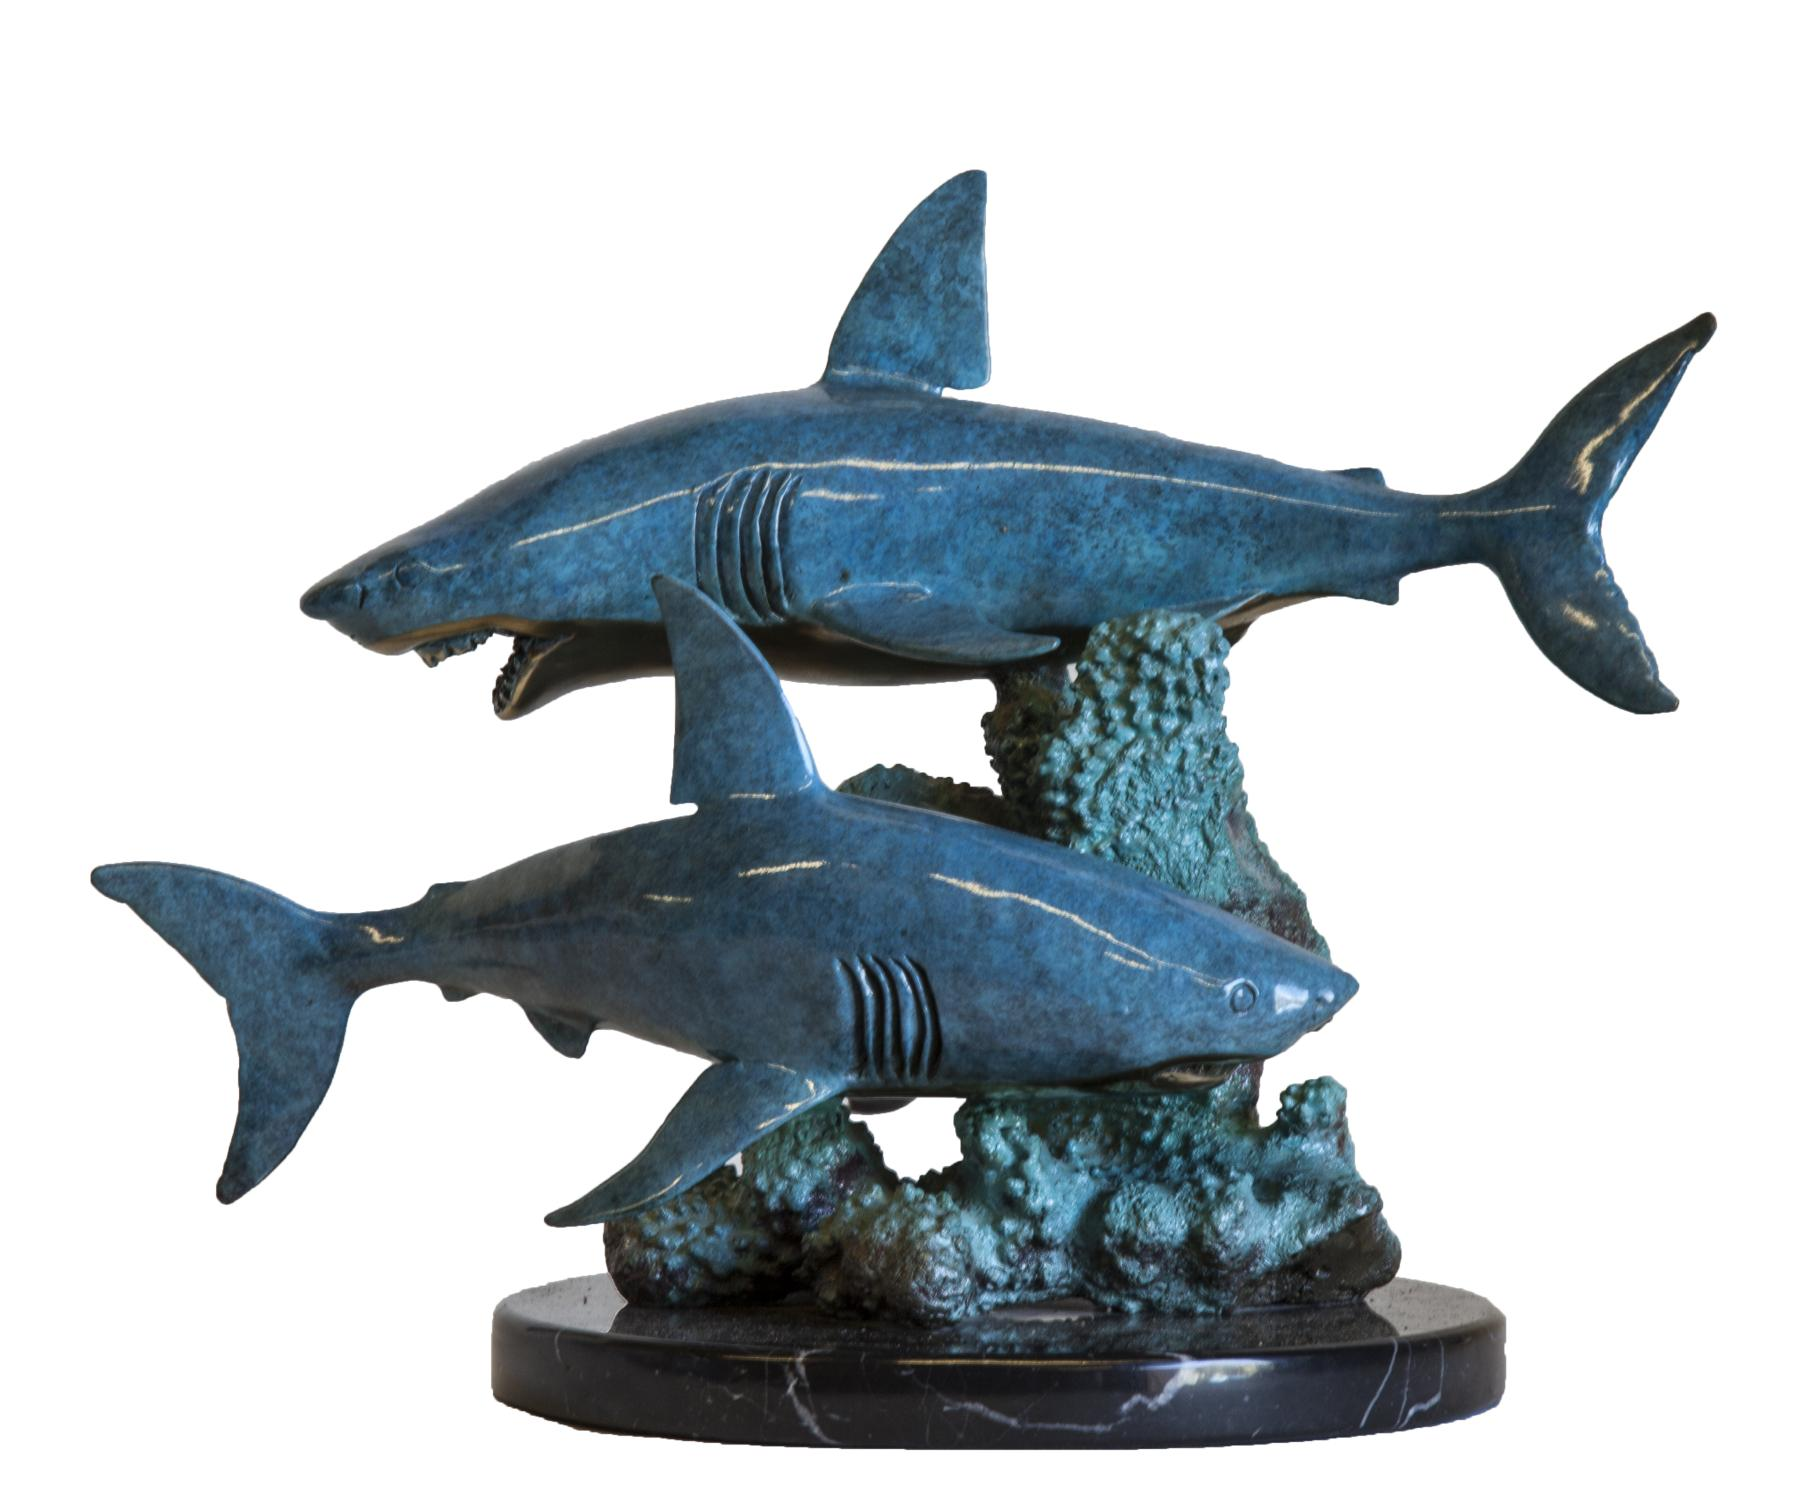 Lot 16 - Sculpture: Blue Sharks, signed Wyland 1999, Bronze on marble plinth, Edition 202 of 300, 25cm high